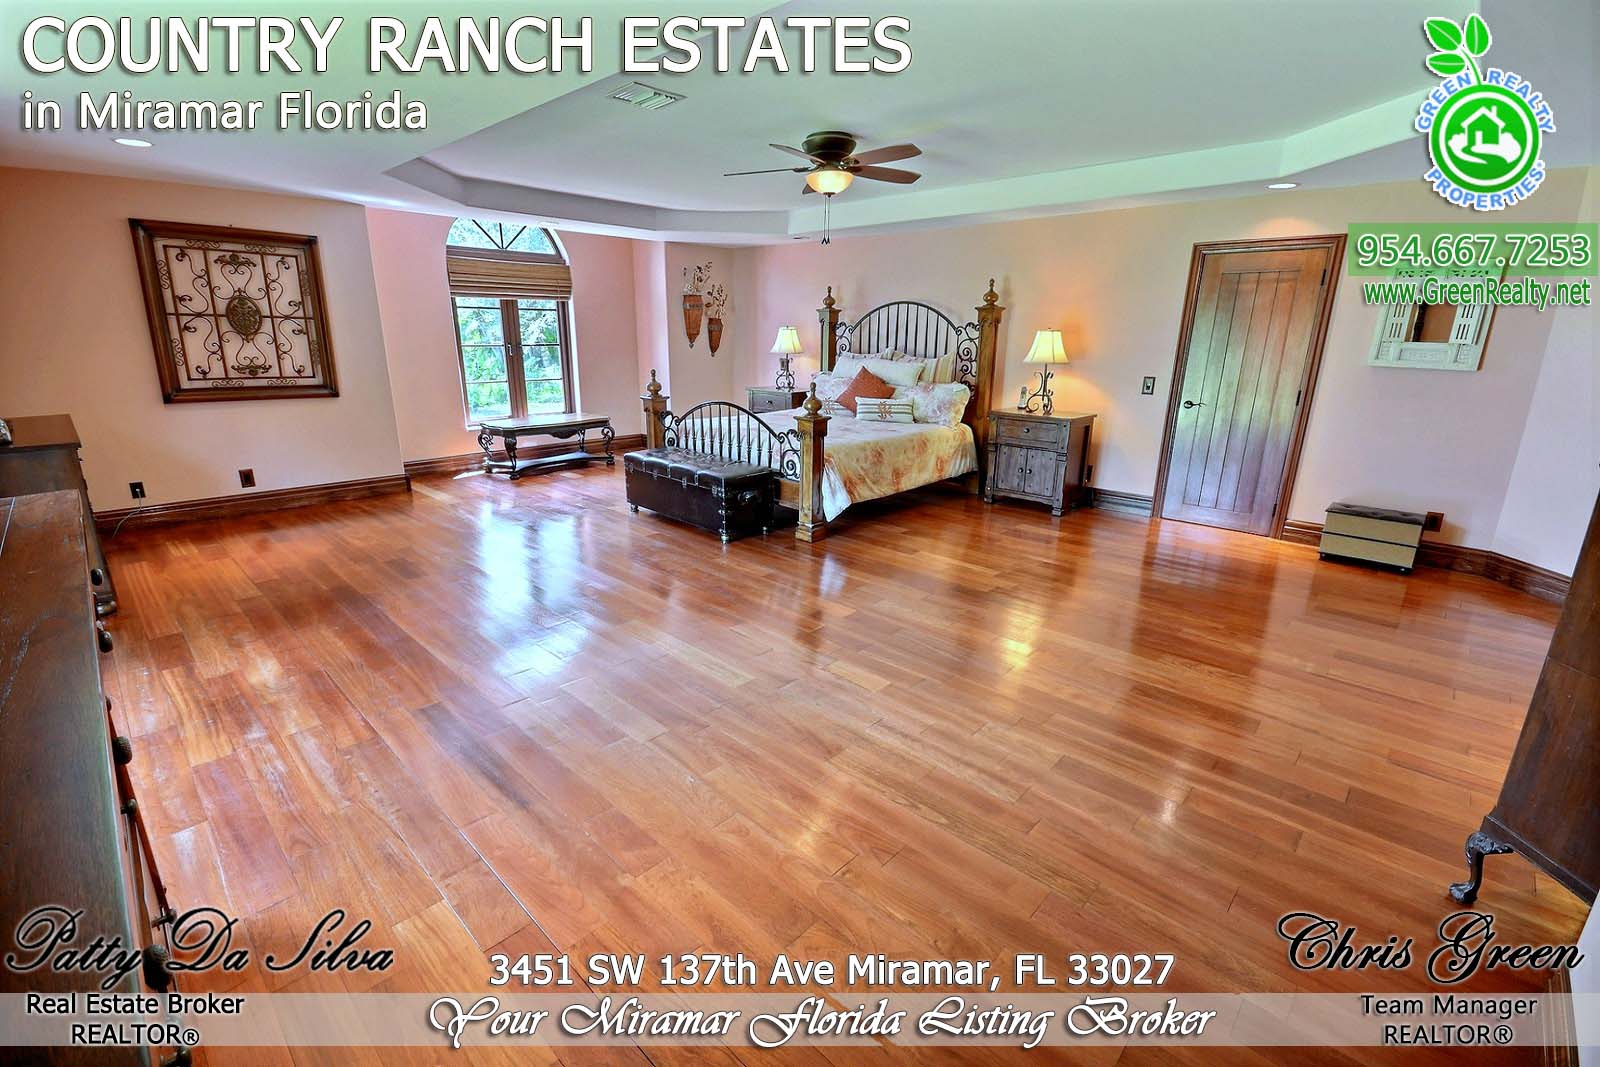 30 Patty Da Silva Sells Miramar Homes